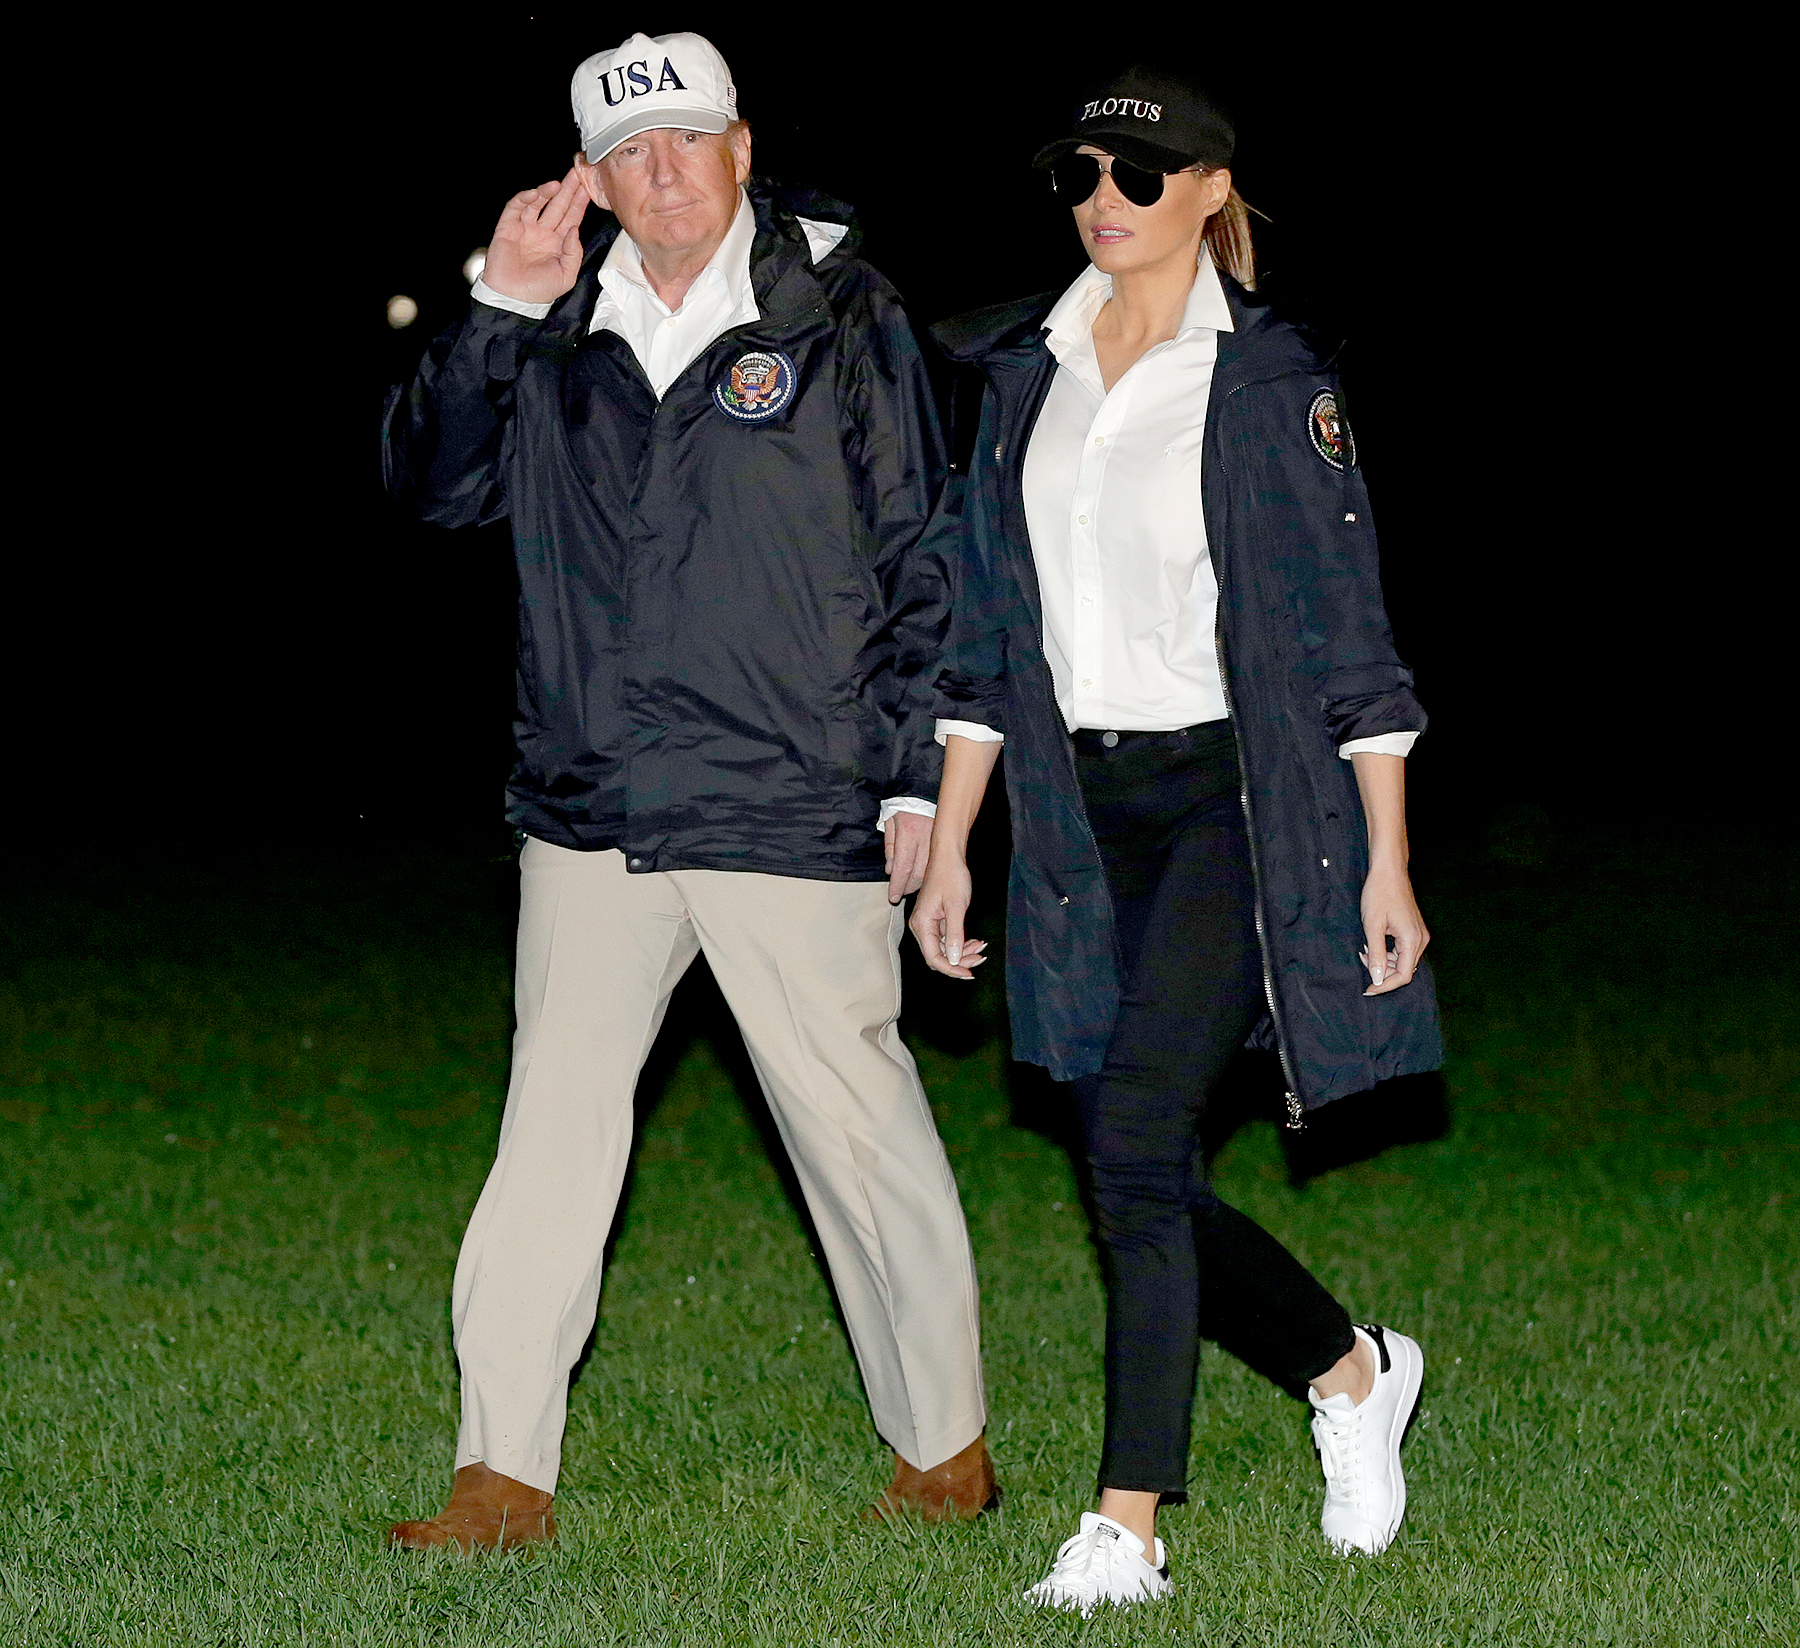 US President Donald Trump and First Lady Melania Trump return to the White House in Washington, DC, from Texas after viewing the damage caused by Hurricane Harvey on August 29, 2017.